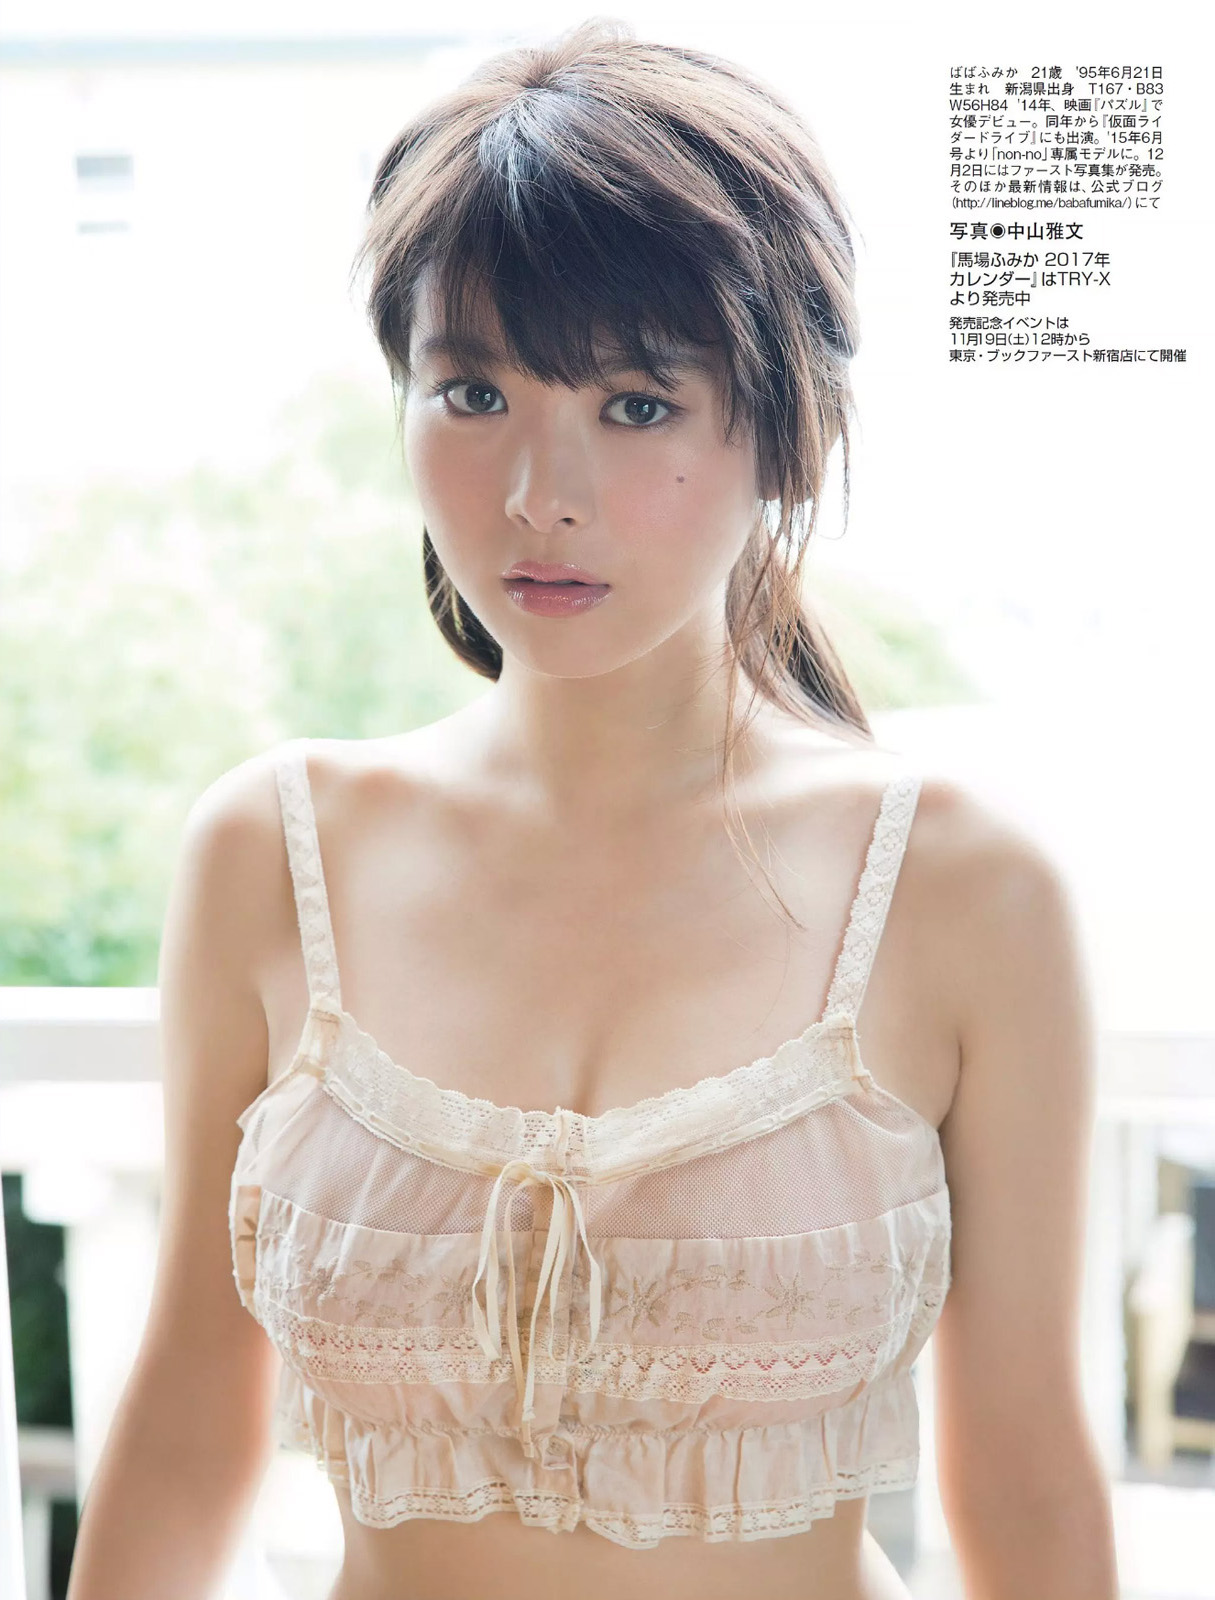 Japanese-model-and-actress-Fumika-Baba-www.ohfree.net-003 Japanese model and actress Fumika Baba 馬場 ふみか nude photos leaked